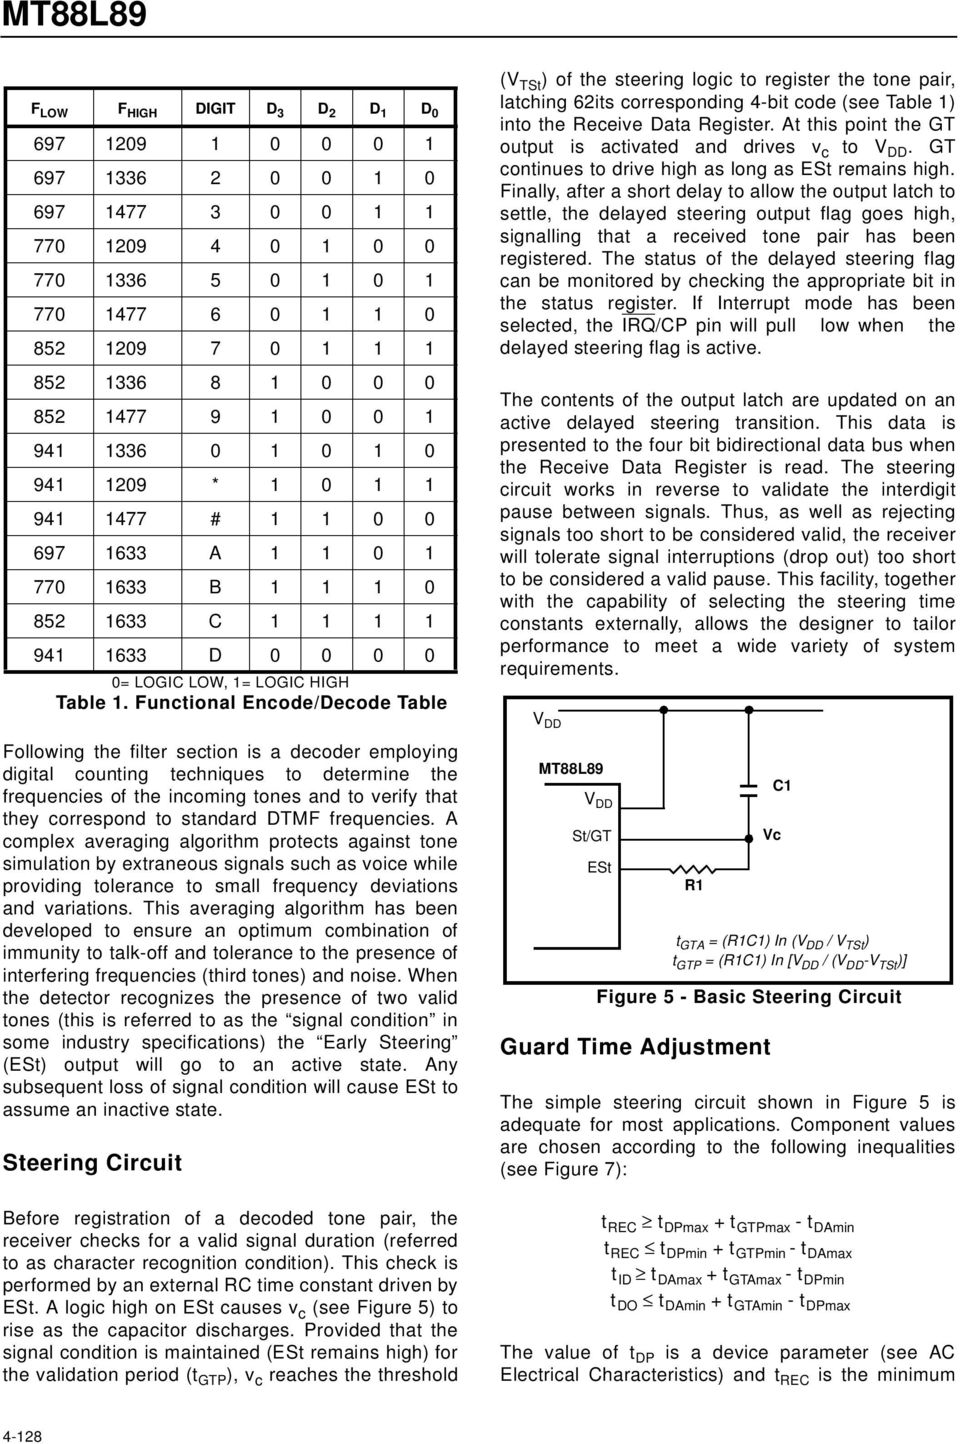 Mt88l89 3v Integrated Dtmf Transceiver Features Applications Radio Remote Control Using Receiver Functional Encode Decode Table Following The Filter Section Is A Decoder Employing Digital Counting Techniques